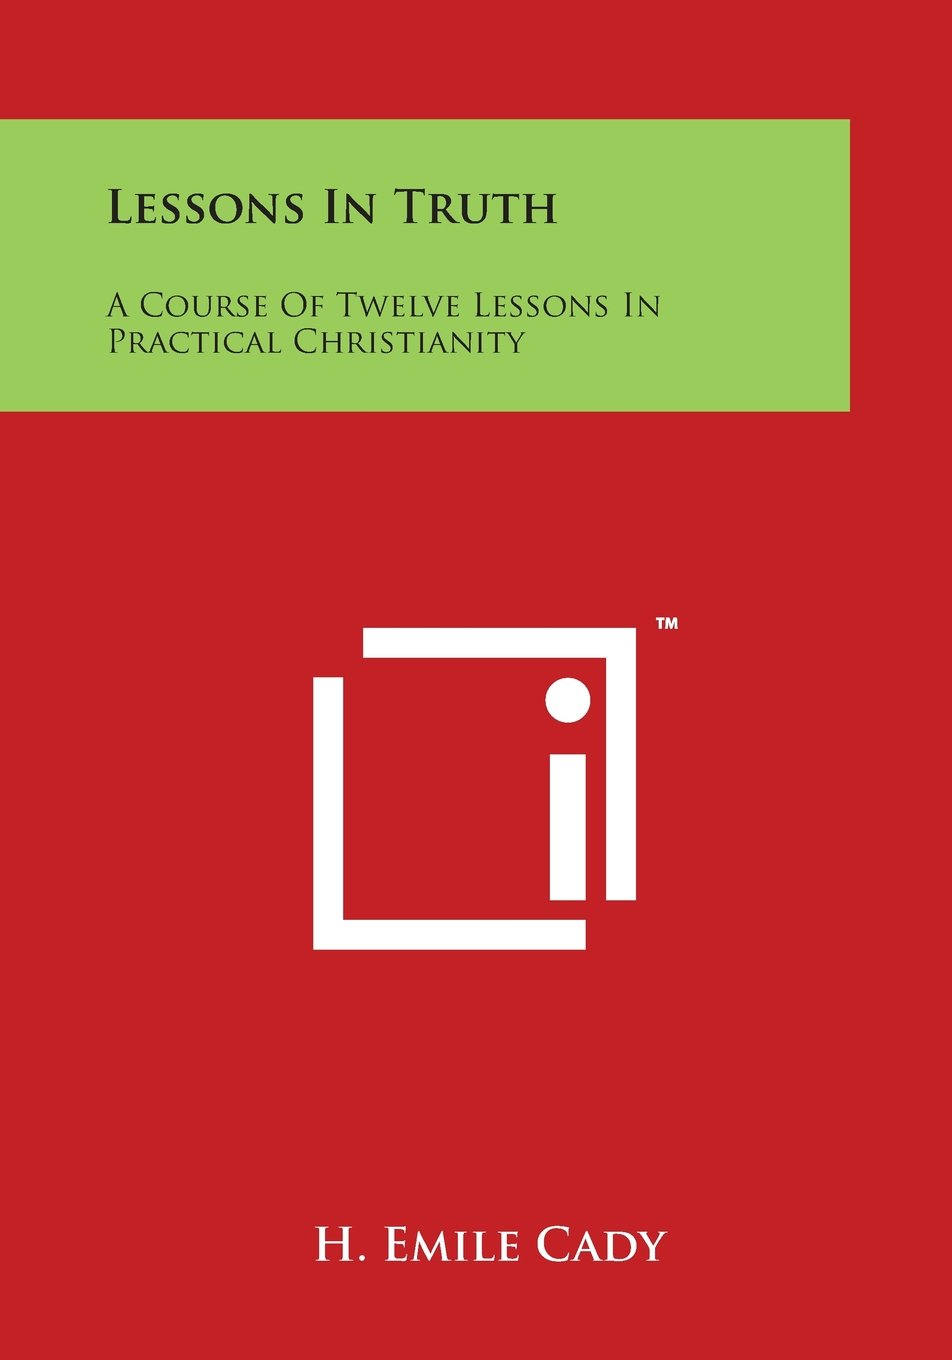 Read Online Lessons In Truth: A Course Of Twelve Lessons In Practical Christianity PDF